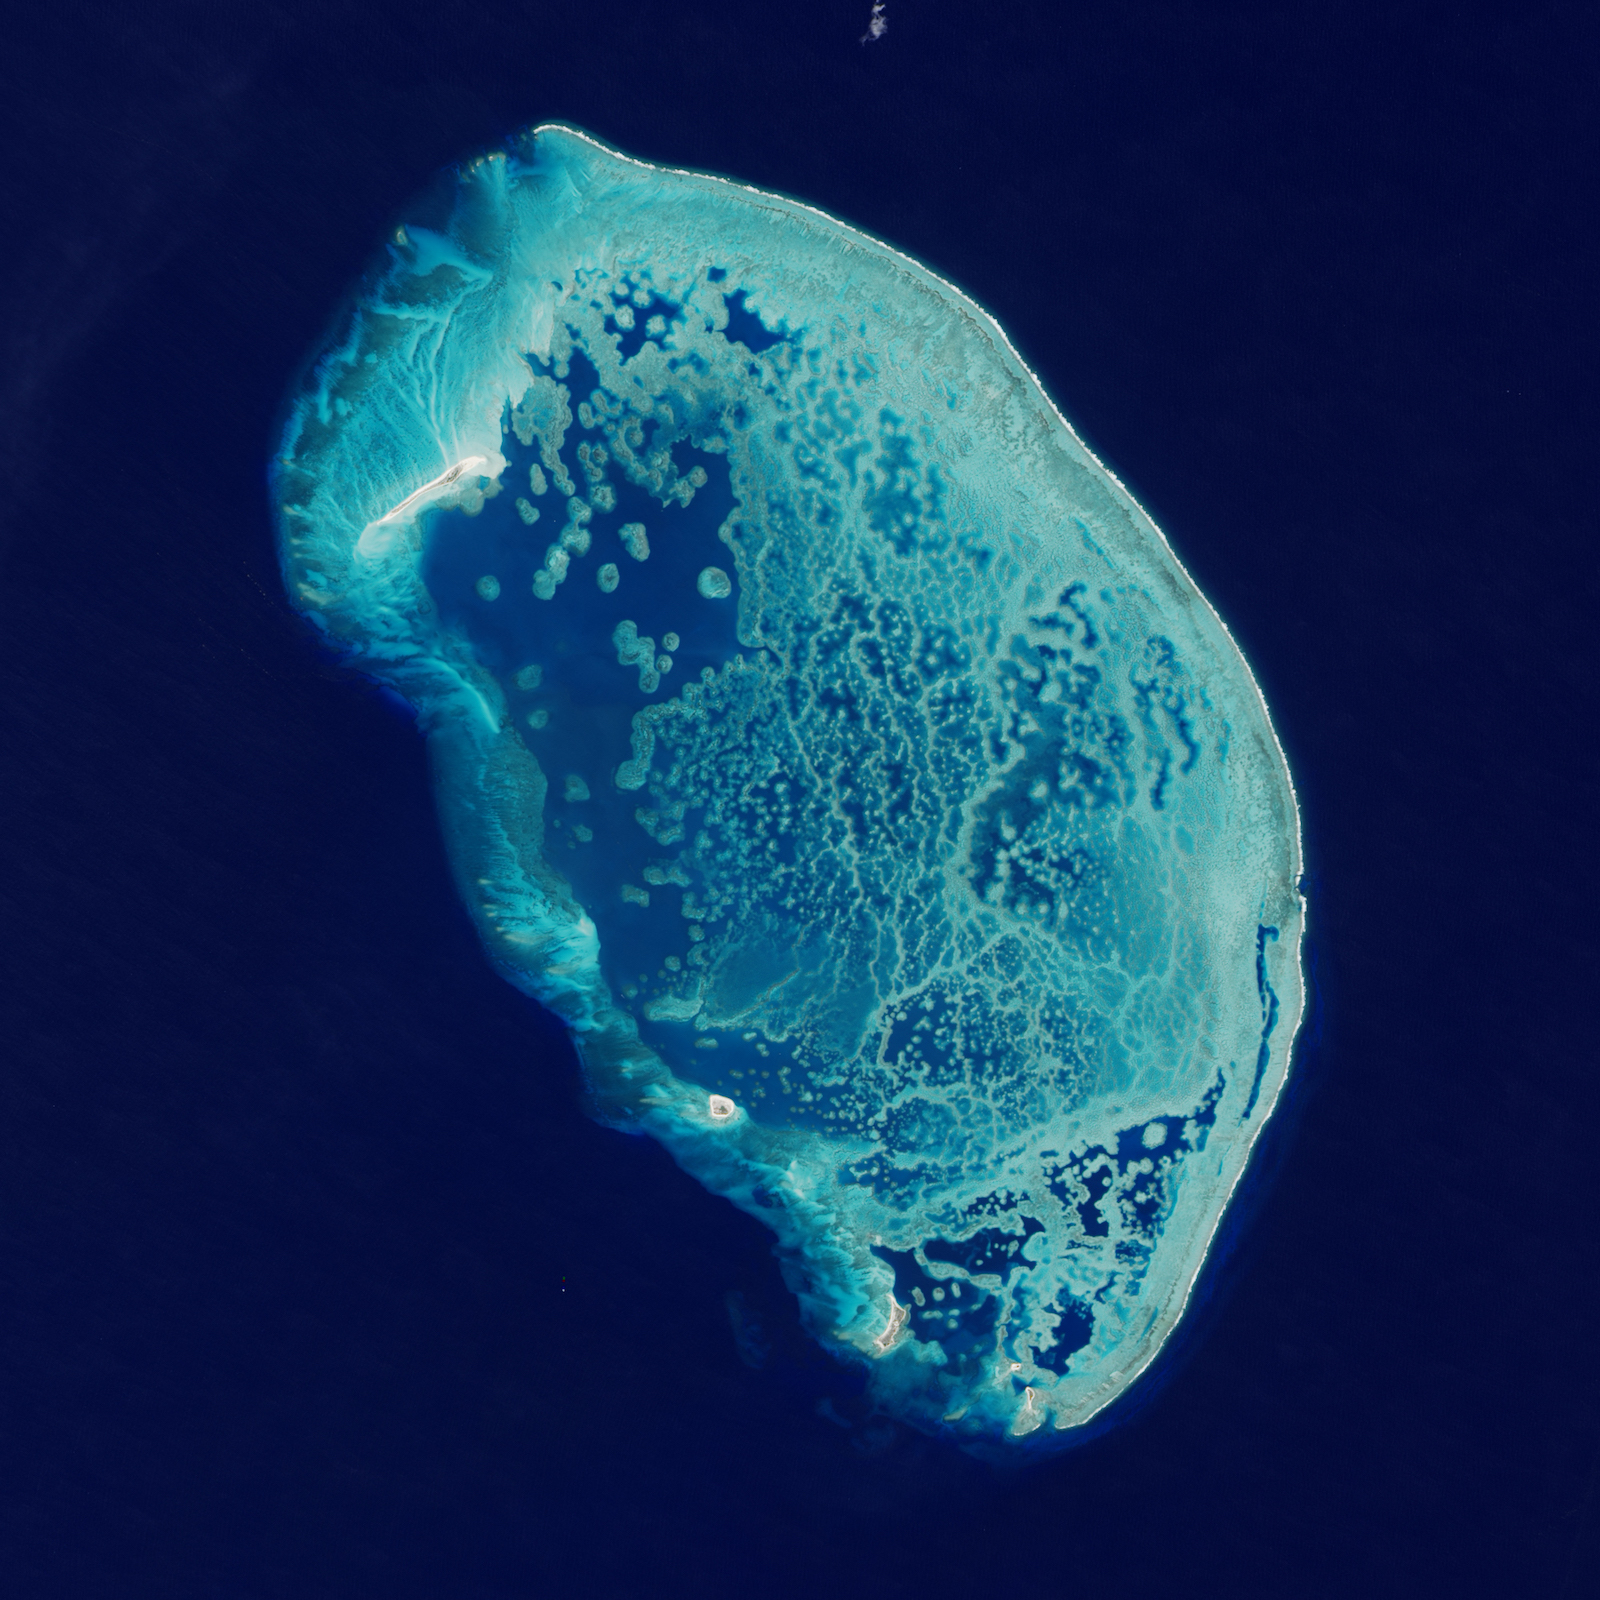 Today's Image of the Day features a look at Arrecife Alacranes, otherwise known as the Scorpion reef of the southern Gulf of Mexico.